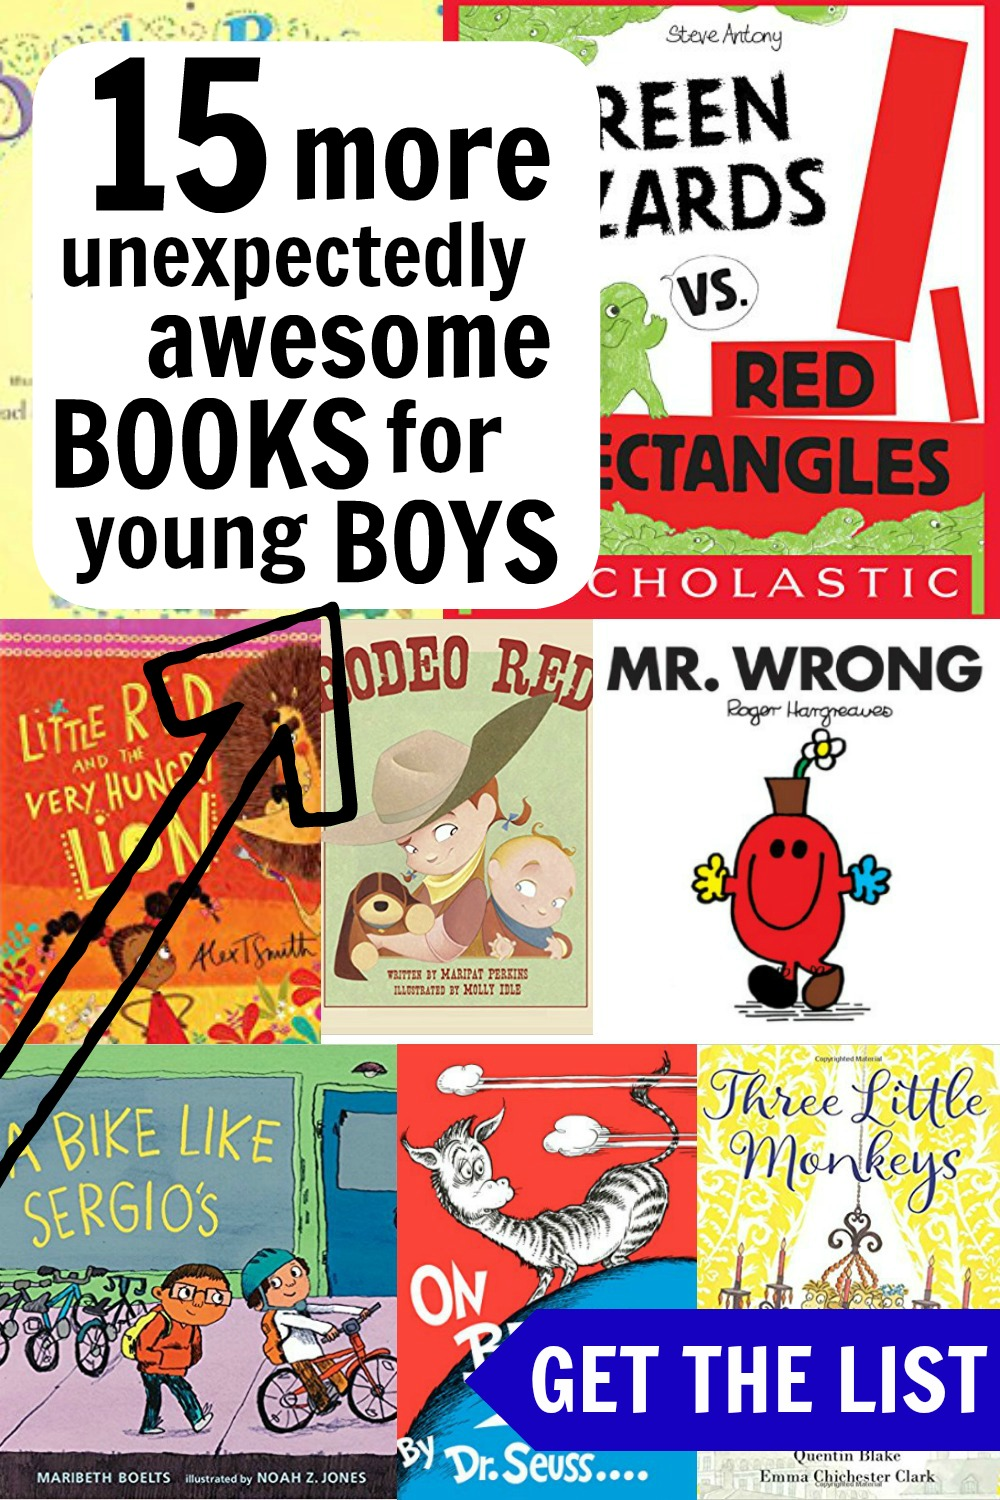 Books for Young Boys: Having a hard time finding books for your boys? These pictures books are tested favorites: the ones my young boys asked to read over and over again. We had to sift through a LOT of books to find these gems. I hope your boys enjoy these books as much as mine did!